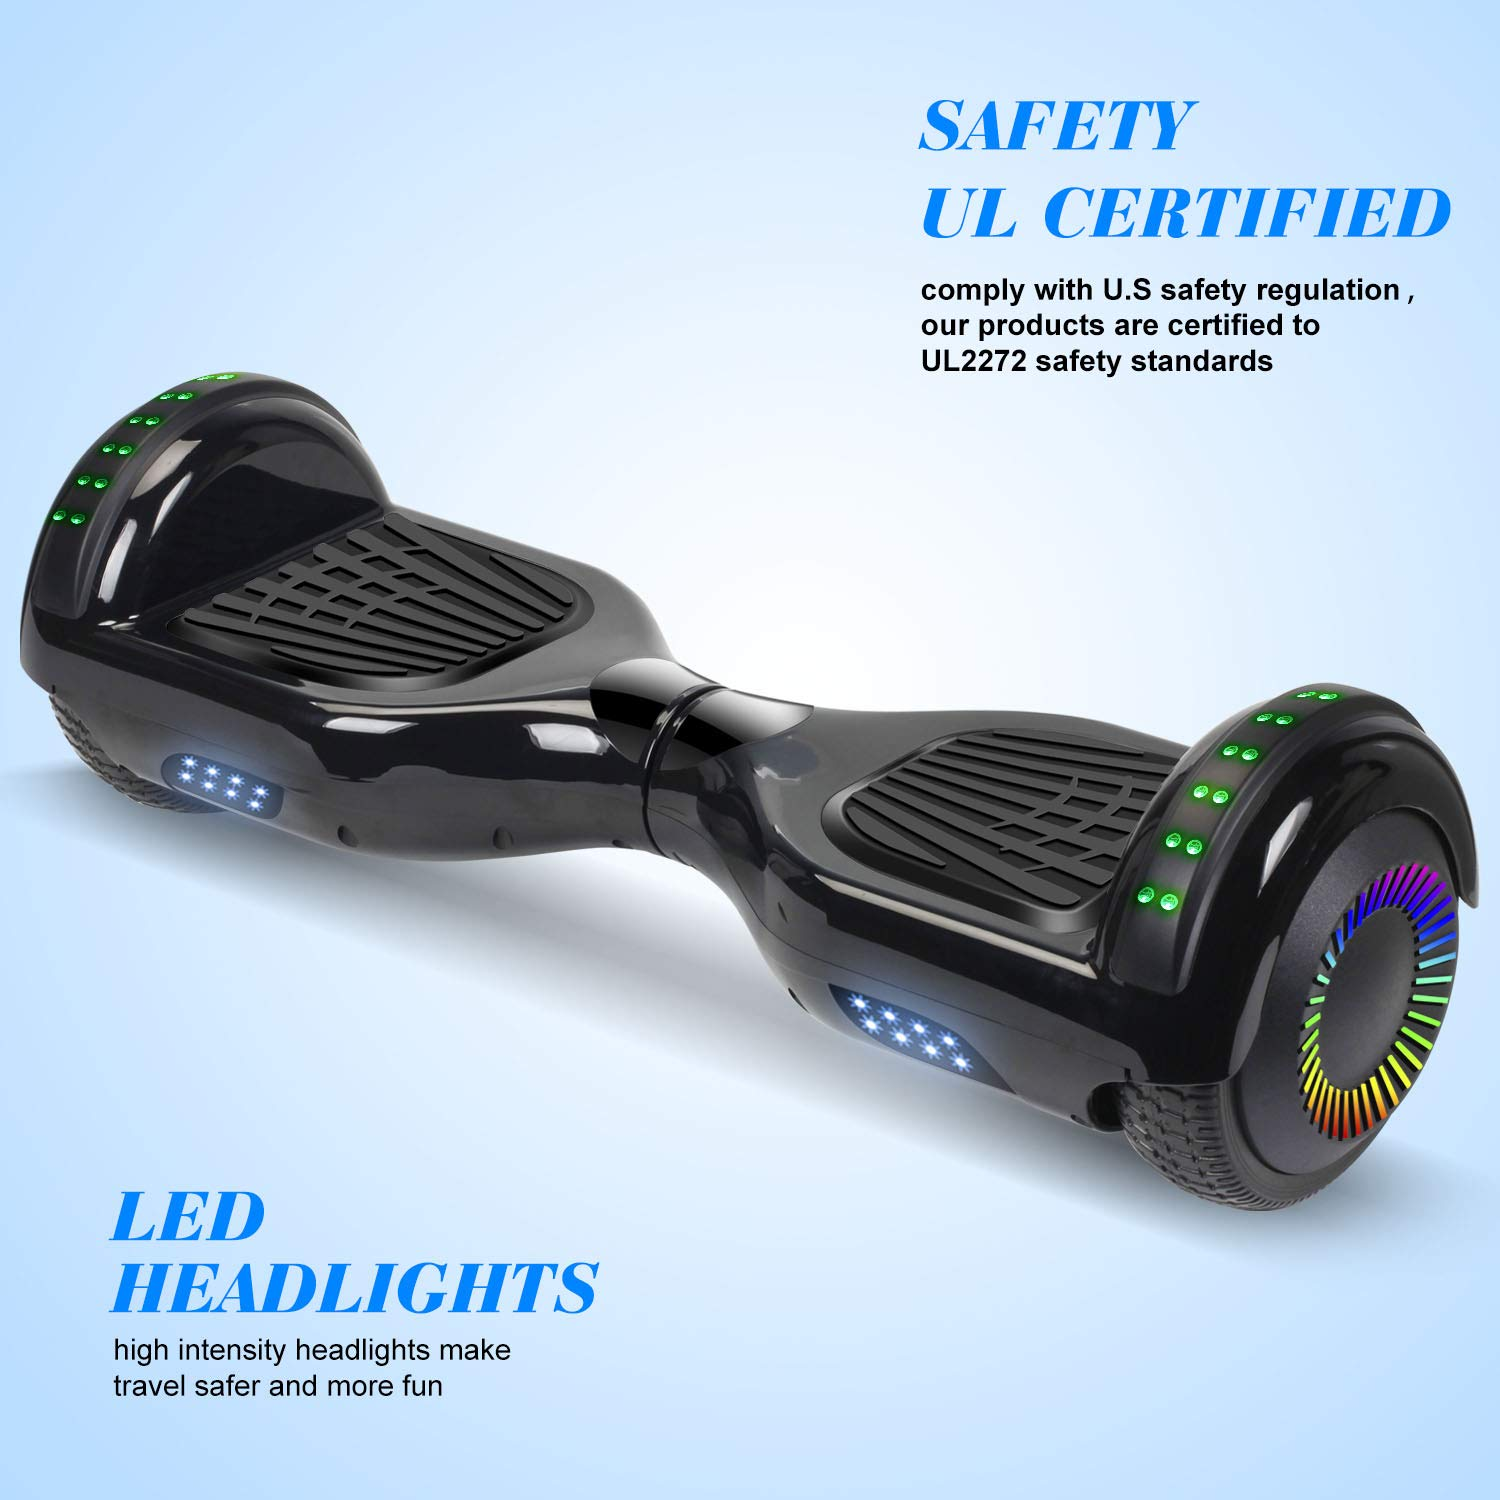 """SWEETBUY Hoverboard UL 2272 Certified 6.5"""" Two-Wheel Bluetooth Self Balancing Electric Scooter with LED Light Flash Lights Wheels Black (Free Carry Bag) by SWEETBUY (Image #3)"""